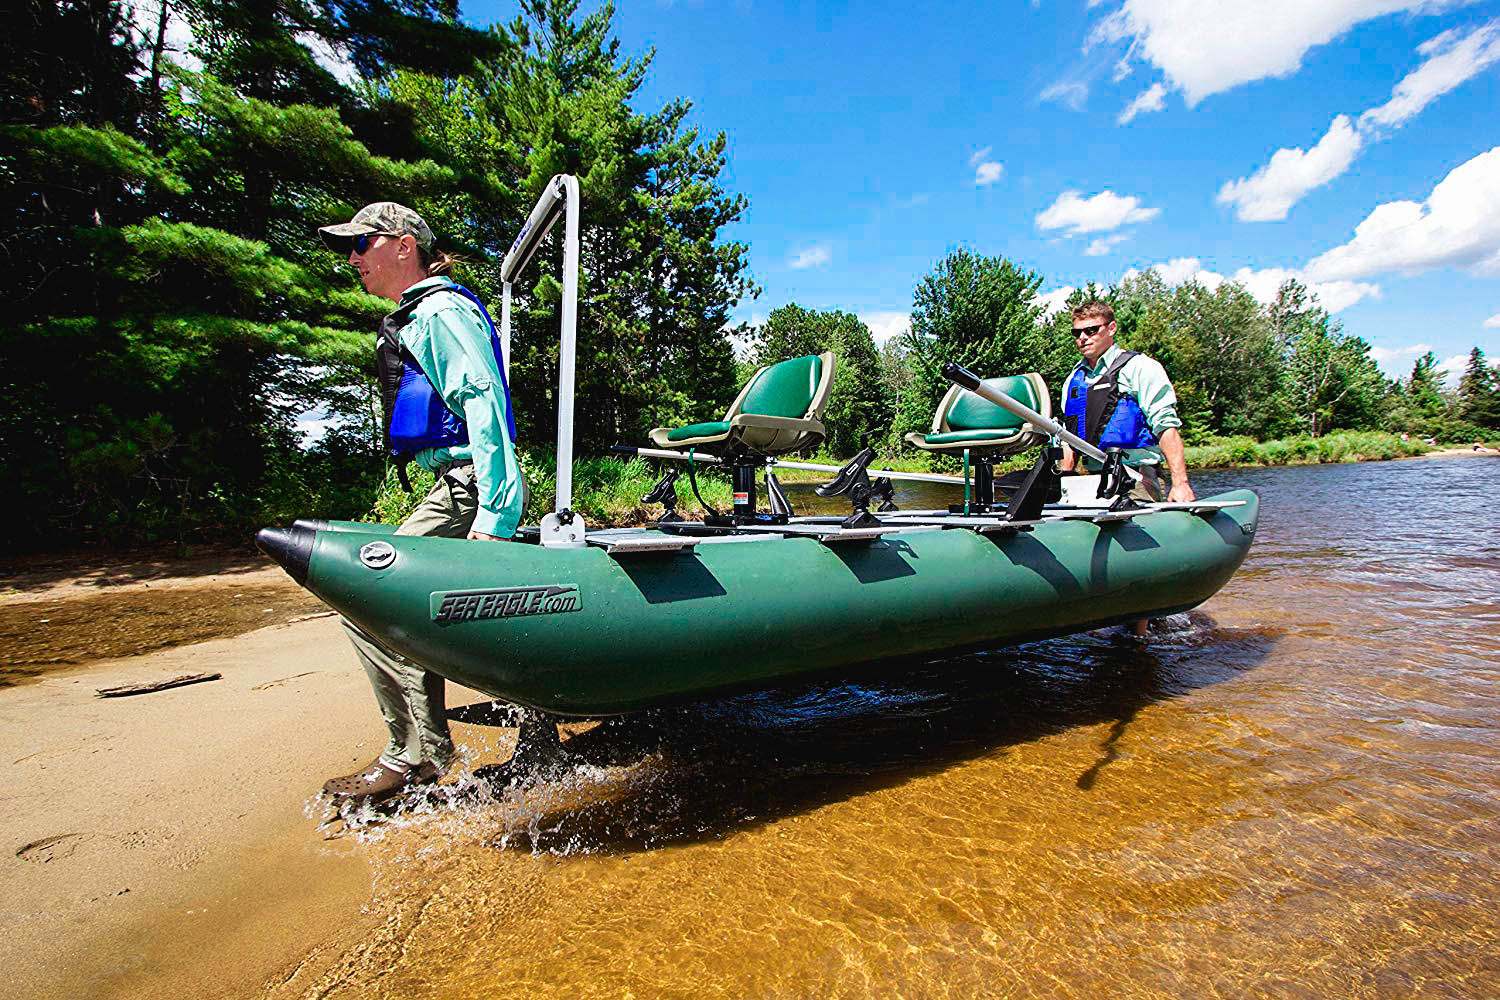 transporting an inflatable boat